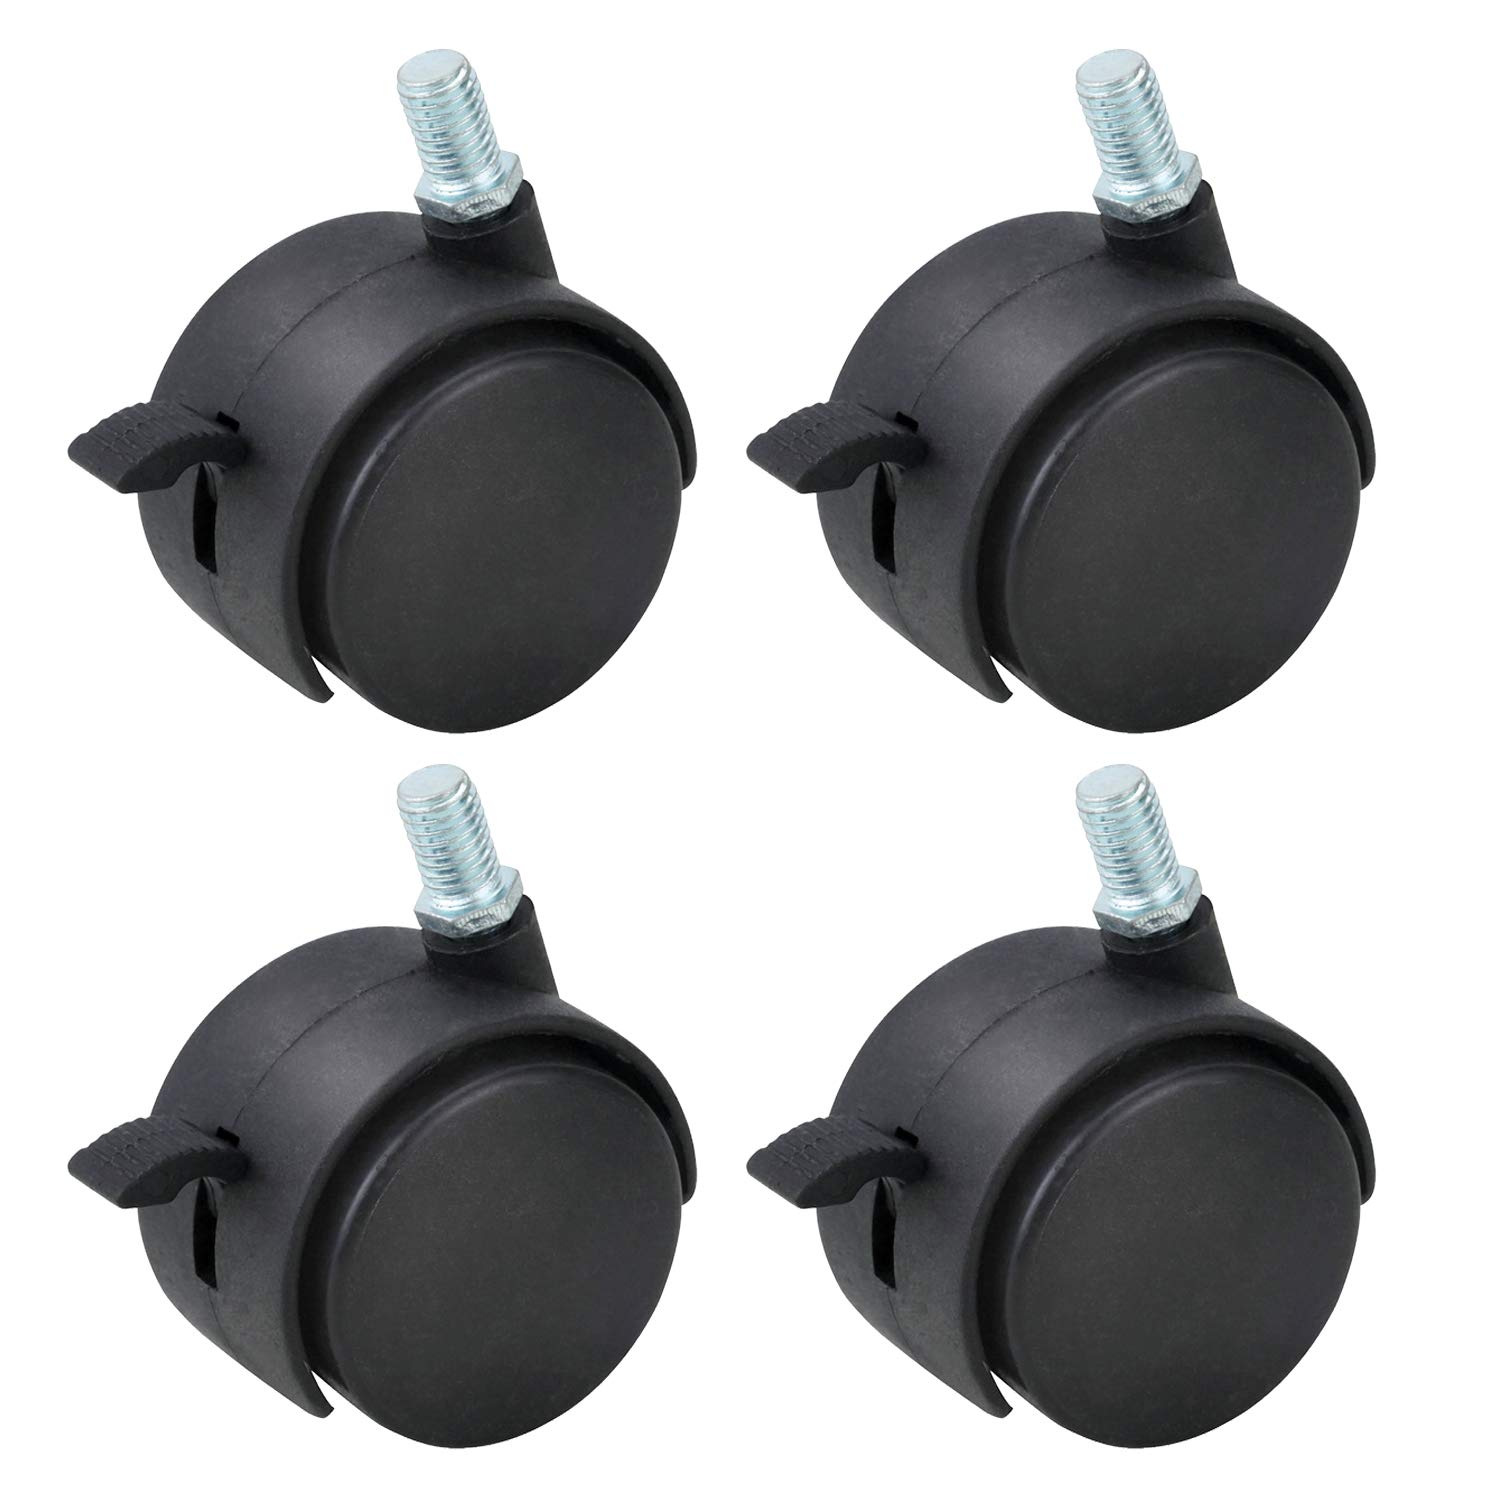 Gizhome 4 Pack 2 Inch Nylon Plastic Replacement Caster Swivel Furniture Wheels Floor Protecting Office Chair Swivel Caster Threaded Stem 5/16'' 3/5'' with Brake Black